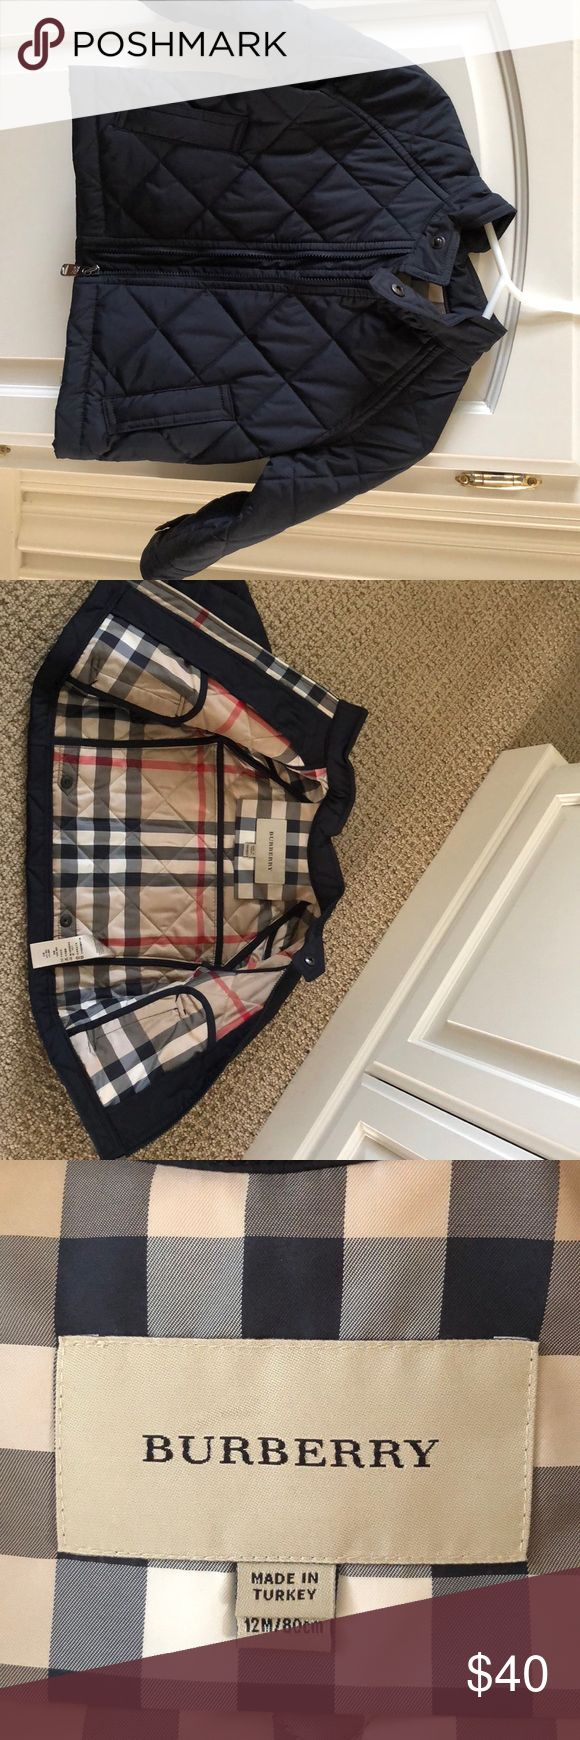 Burberry coat Infant 12 months Navy blue Burberry coat Size: Infant - 12 month Inside lining is signature Burberry print Two front pockets Front zipper, snaps at wrist and neck Wipeable and Waterproof exterior Like new, worn once for a picture Burberry Jackets & Coats